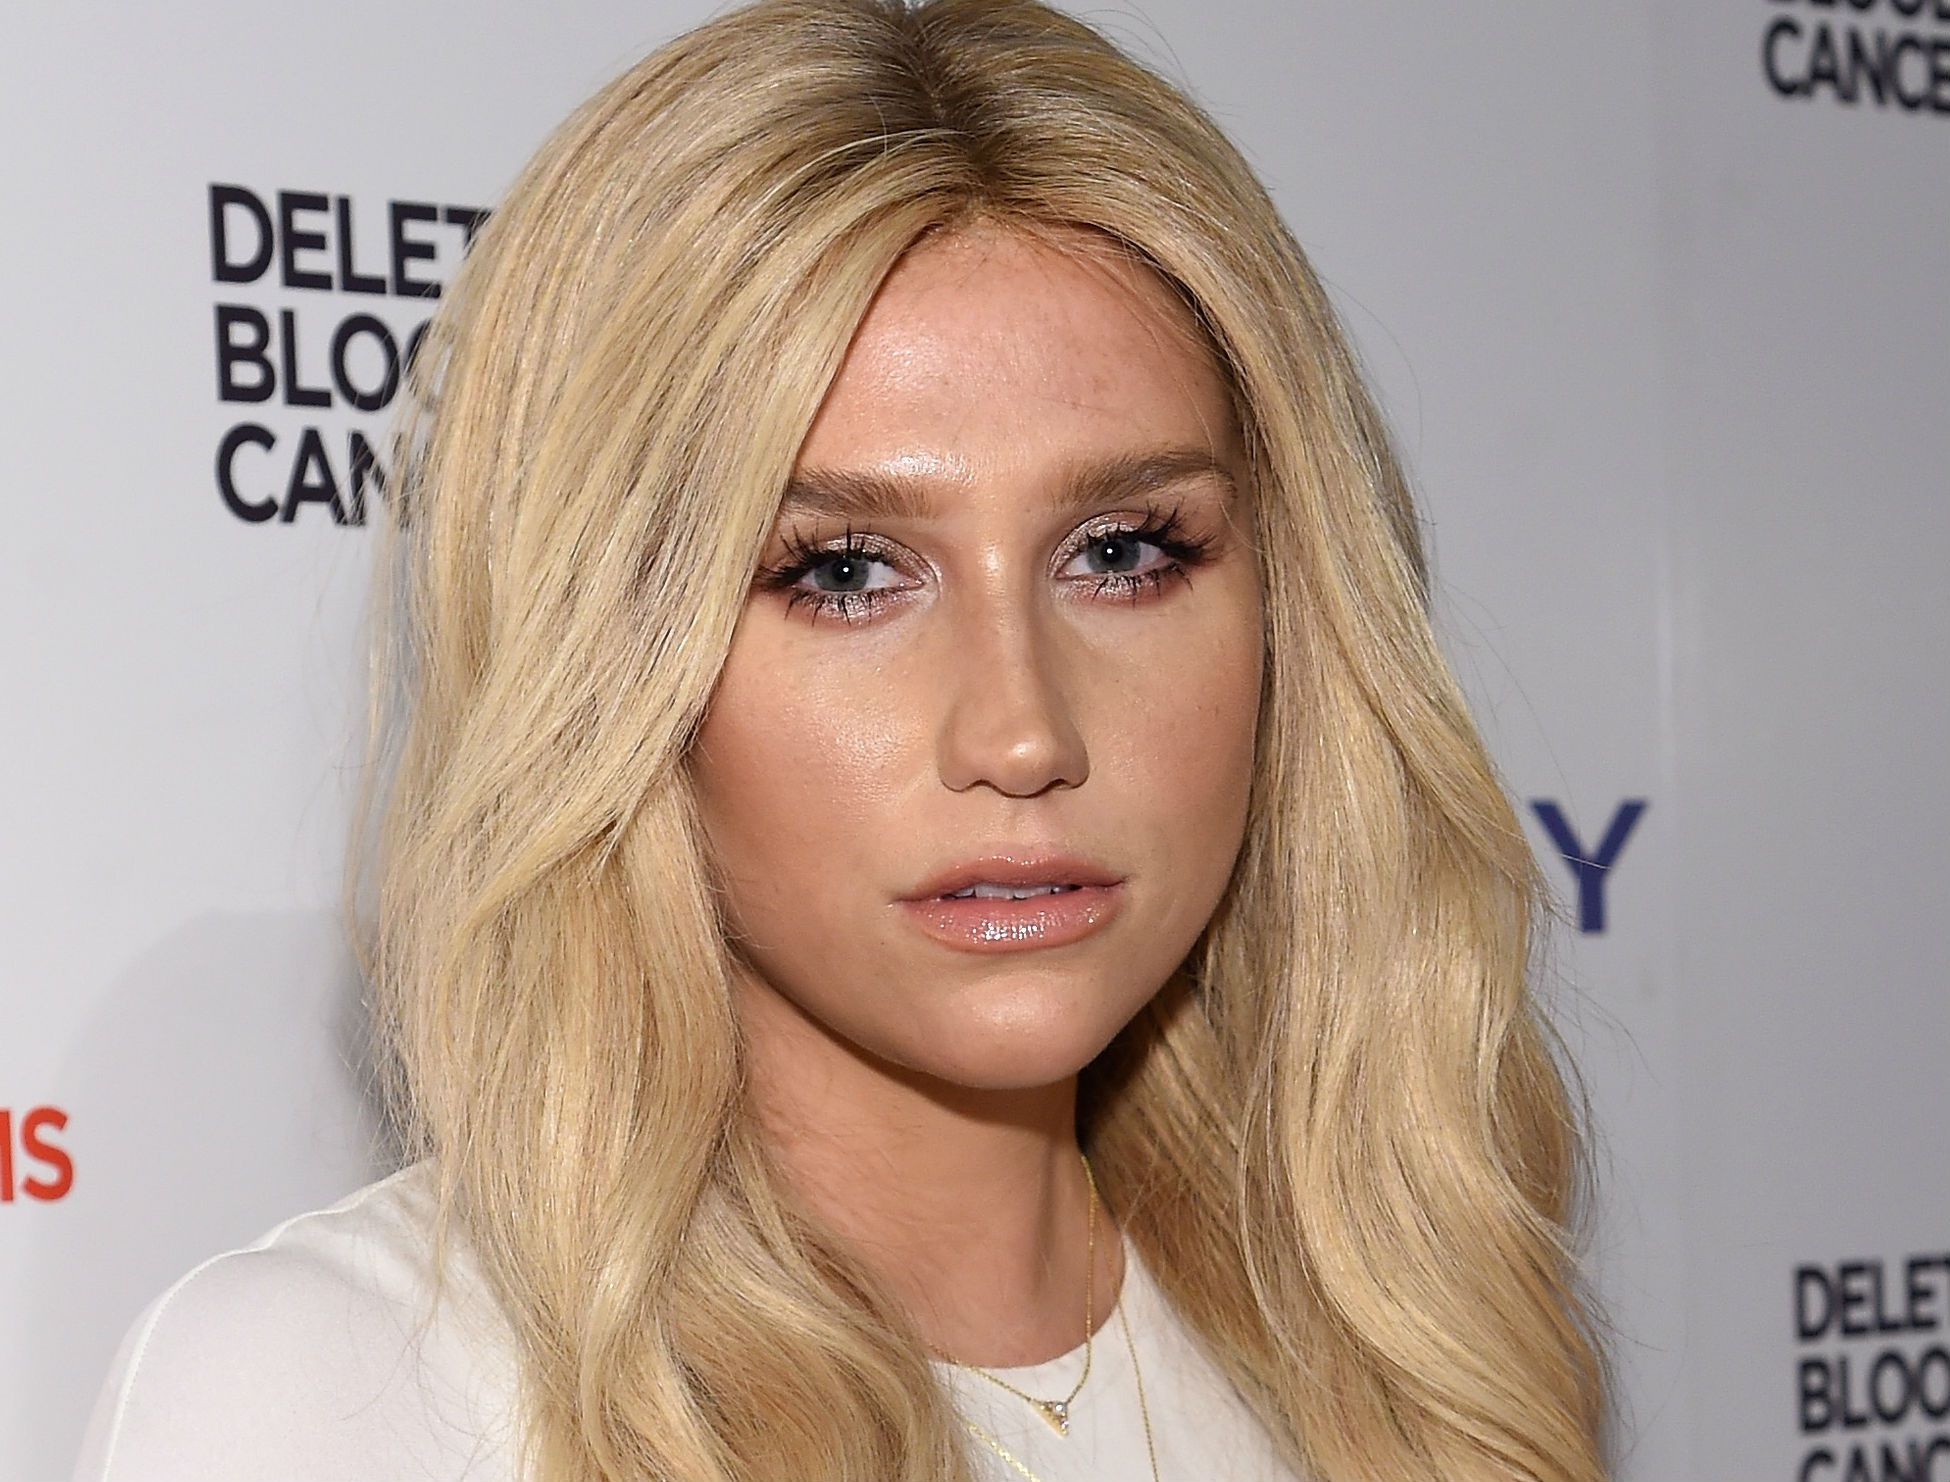 Kesha doesn't have to share a #MeToo post.